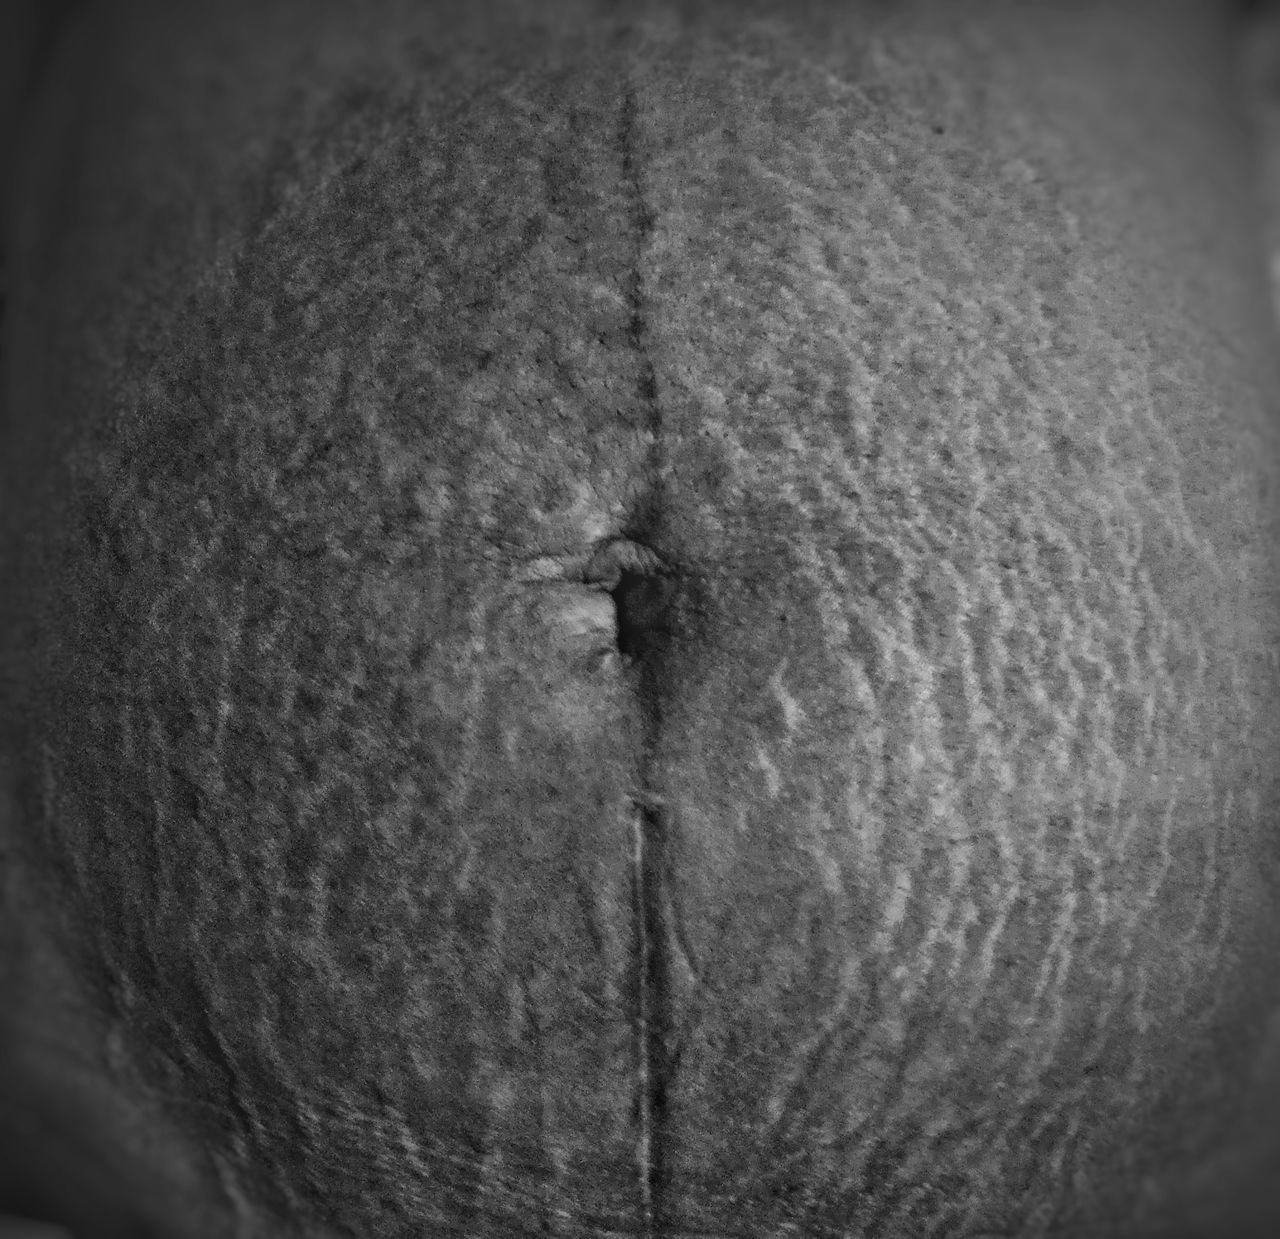 """Her stretch marks were lightning strikes of life, proving she could weather the storm"" - DesireeMarie Close-up Textured  Stretchmarks EyeEm Best Shots - Black + White Blackandwhite Photography Black And White Streetphoto_bw Blackandwhite First Eyeem Photo EyeEmNewHere EyeEmBestPics EyeEm Best Shots Eyeem Philippines Photooftheday Adults Only One Person Lines&Design Lineart Lifestyles Lines Lines And Shapes Lines And Design Lines And Shadows Textured  Fashion Photography EyeEm Diversity"